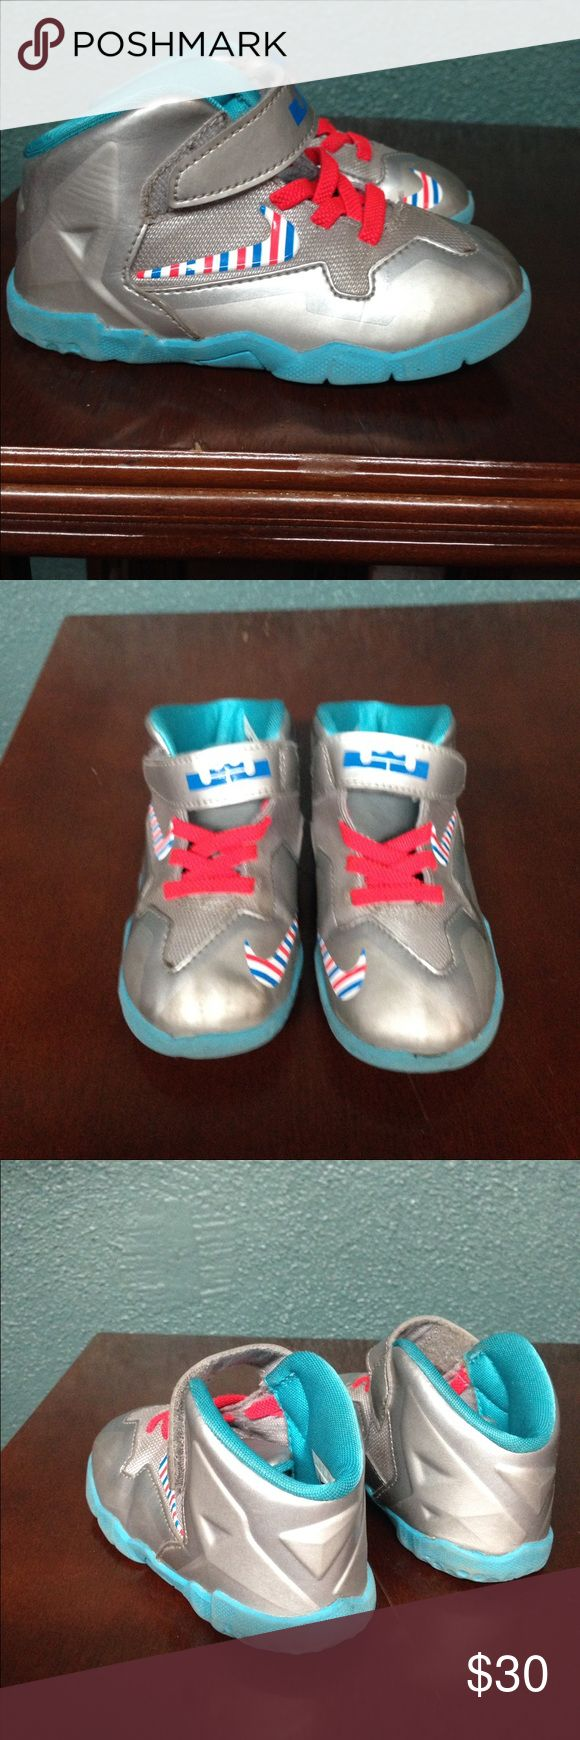 """Lebron James NIKE Tennis Shoes Nike """"Lebron James"""" Kid Shoes. Shoes are in perfect condition. Size 7. These are for the trendy stylish kid of today! Nike Shoes Sneakers"""